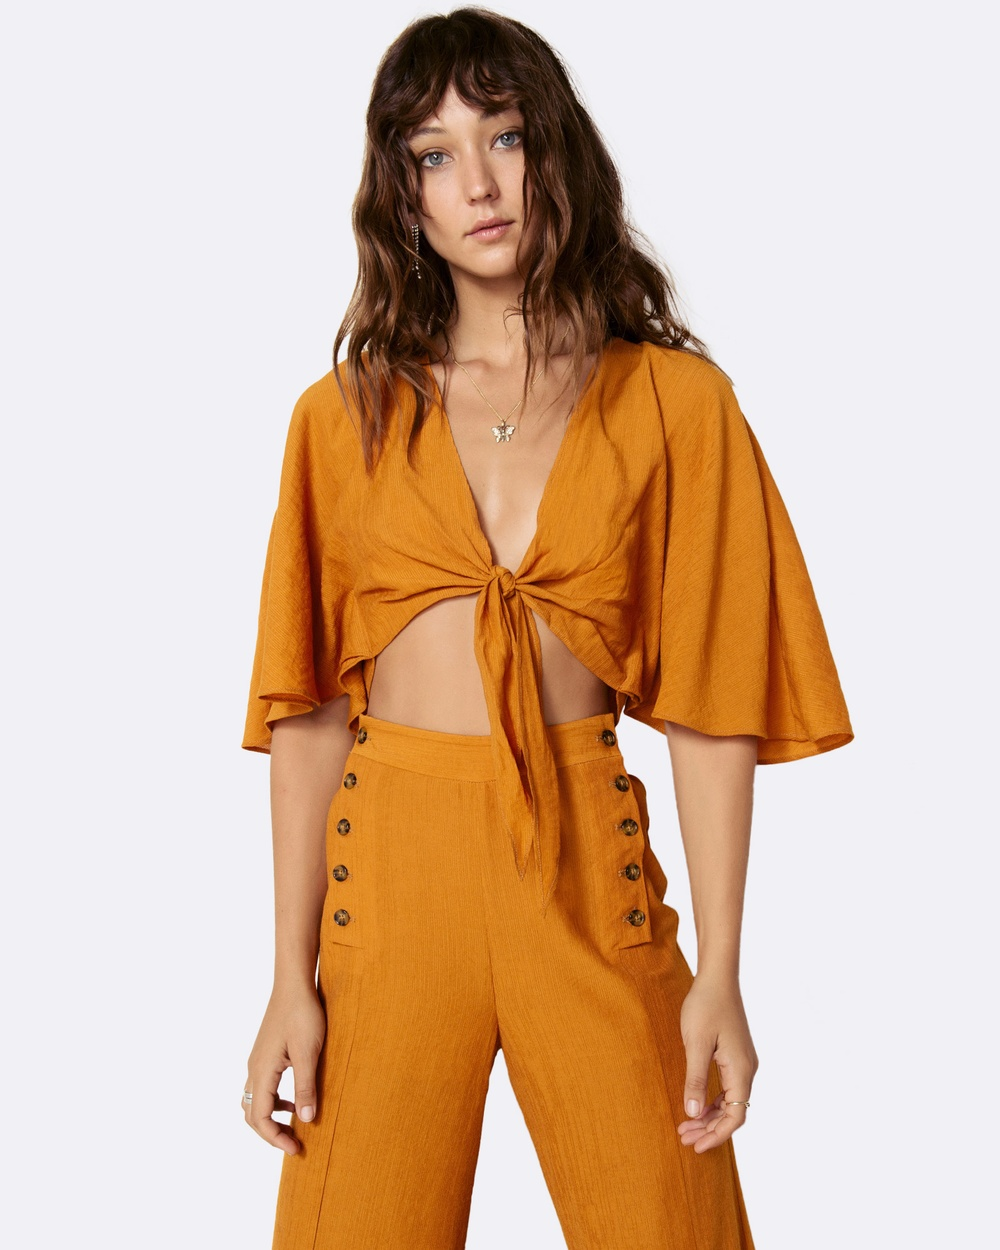 The East Order Amelie Top Cropped tops Orange Amelie Top